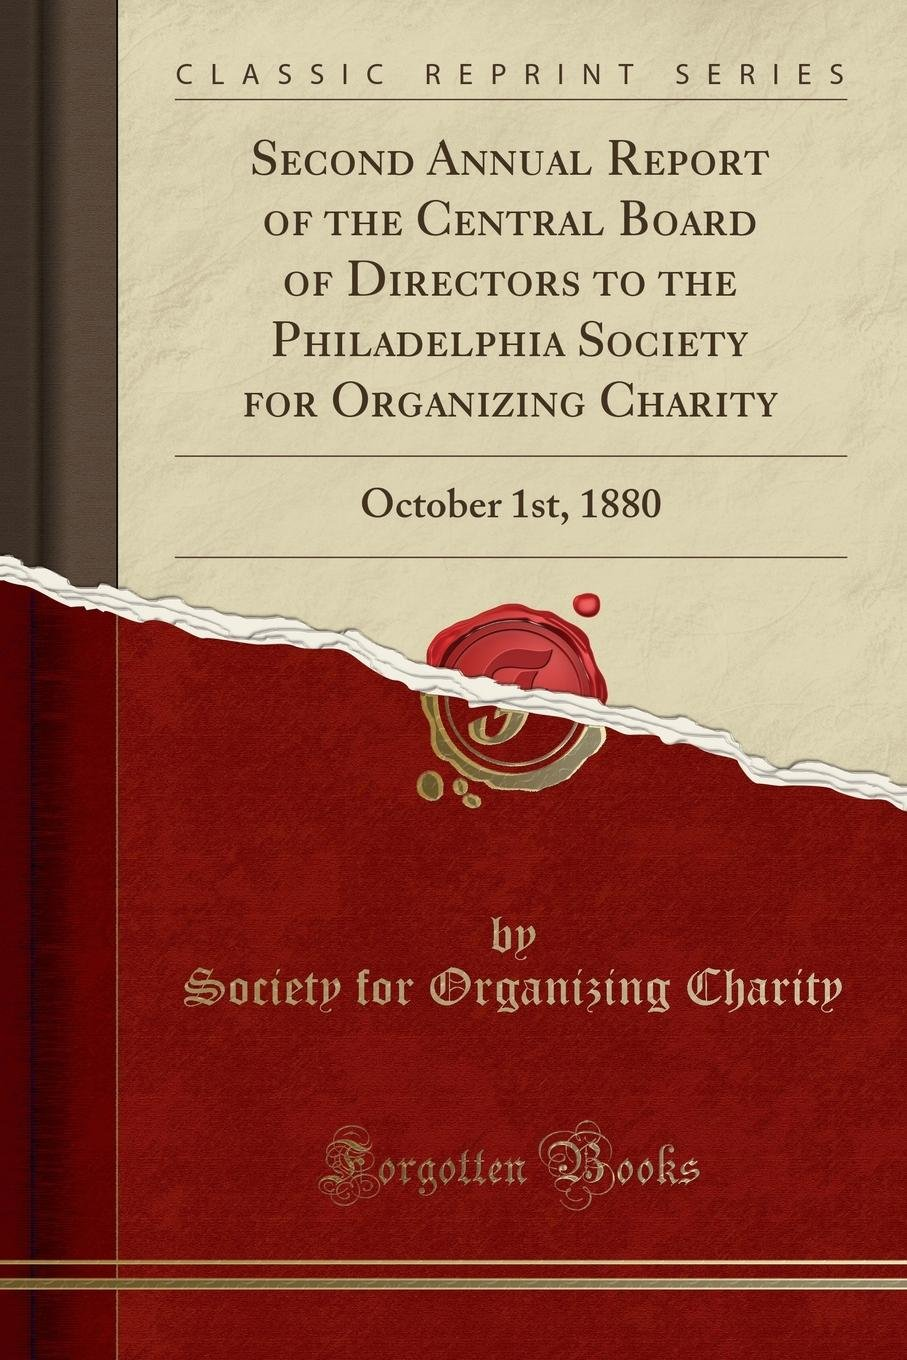 Download Second Annual Report of the Central Board of Directors to the Philadelphia Society for Organizing Charity: October 1st, 1880 (Classic Reprint) ebook